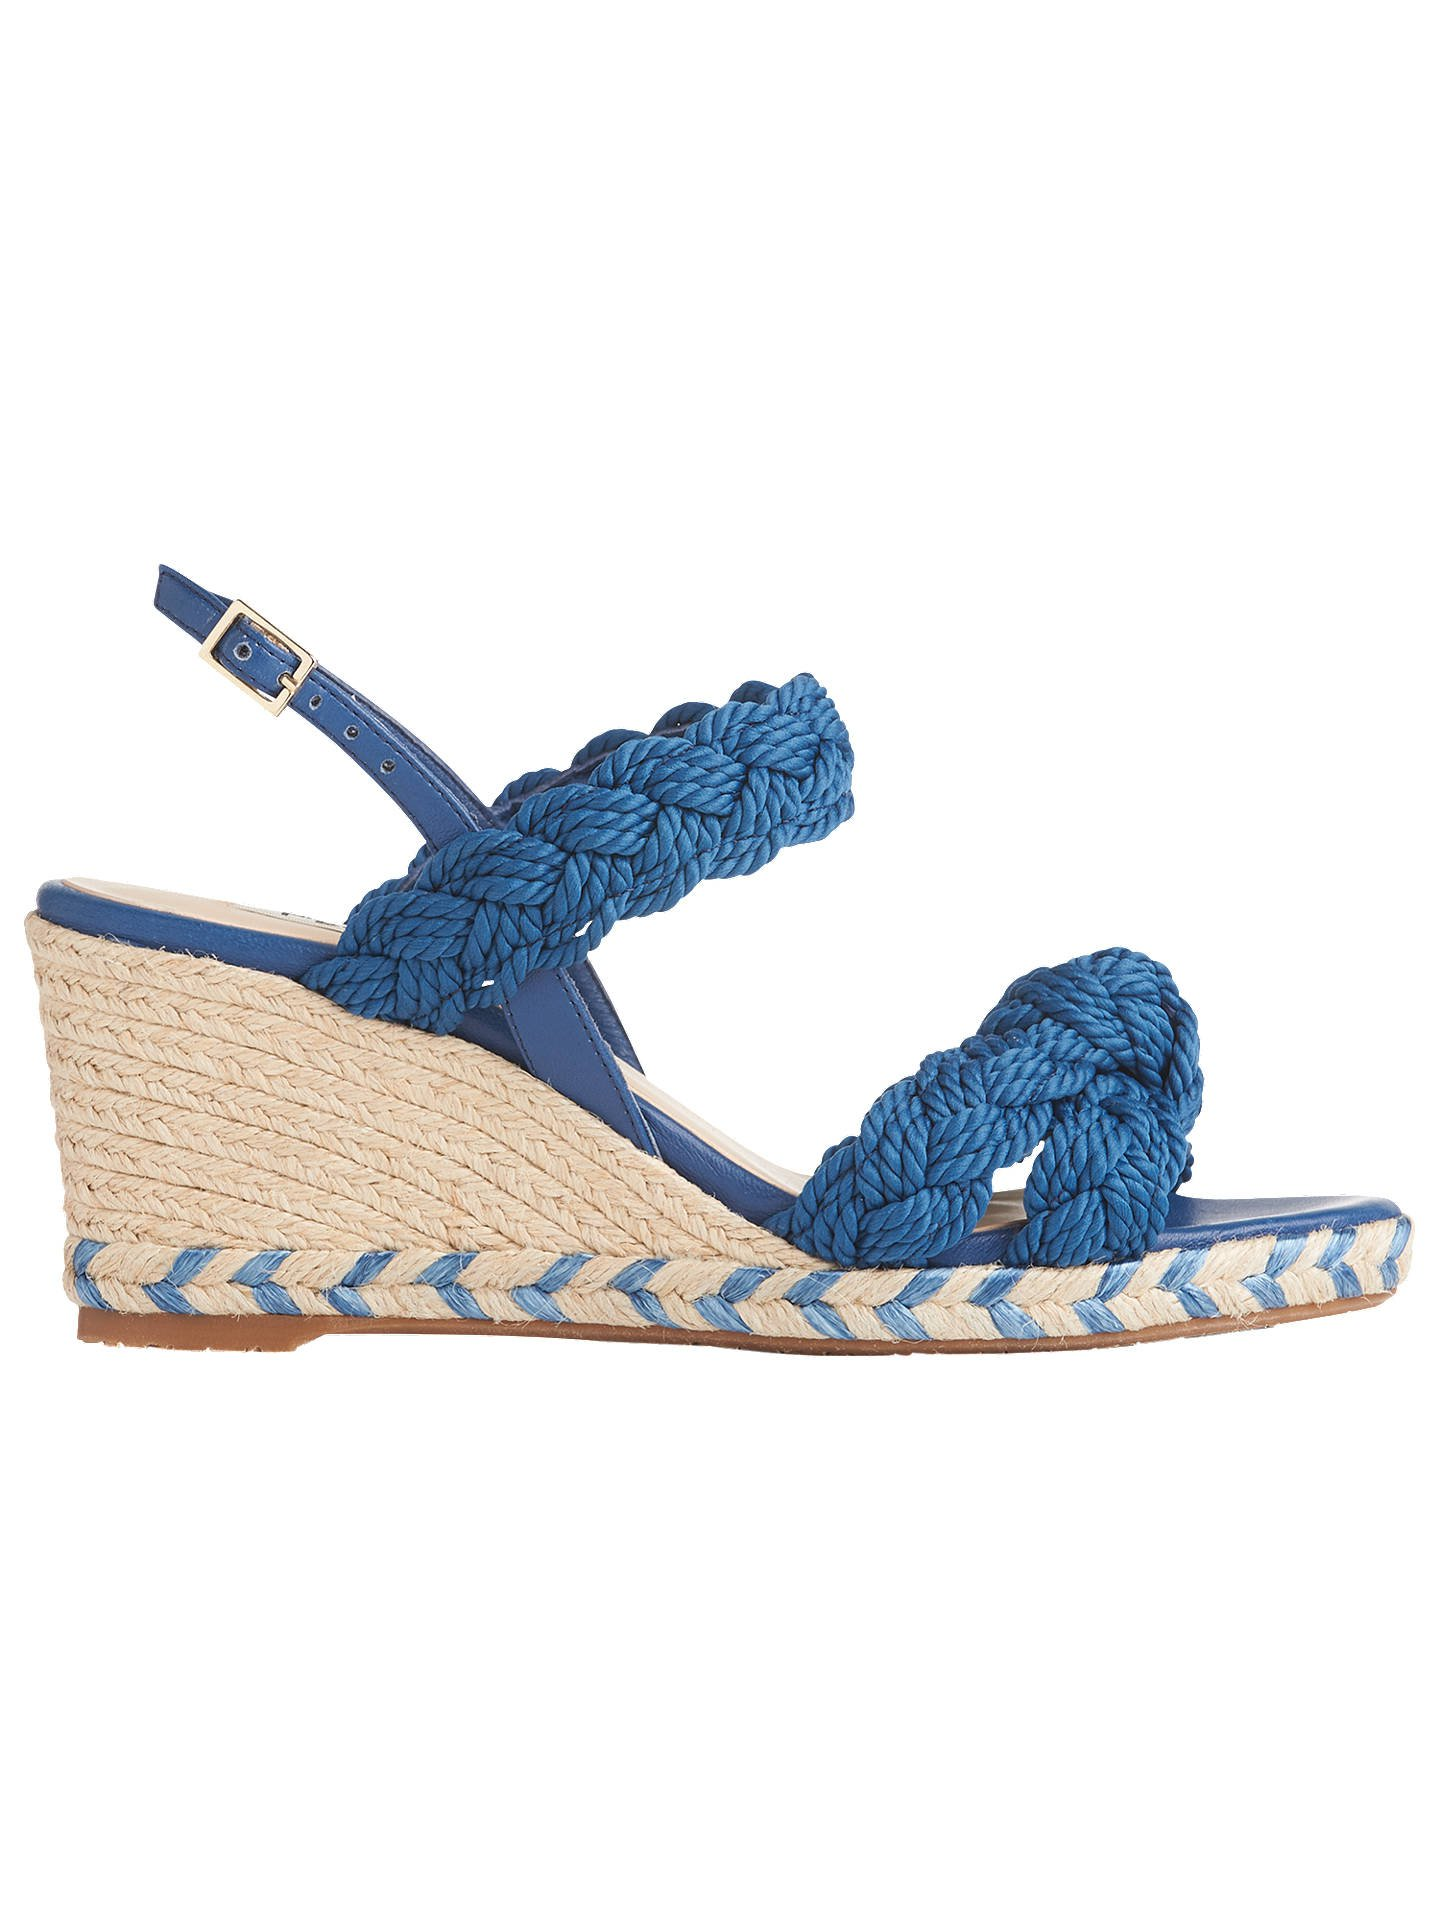 L.K.Bennett Roxie Wedge Heel Espadrille Sandals at John Lewis & Partners